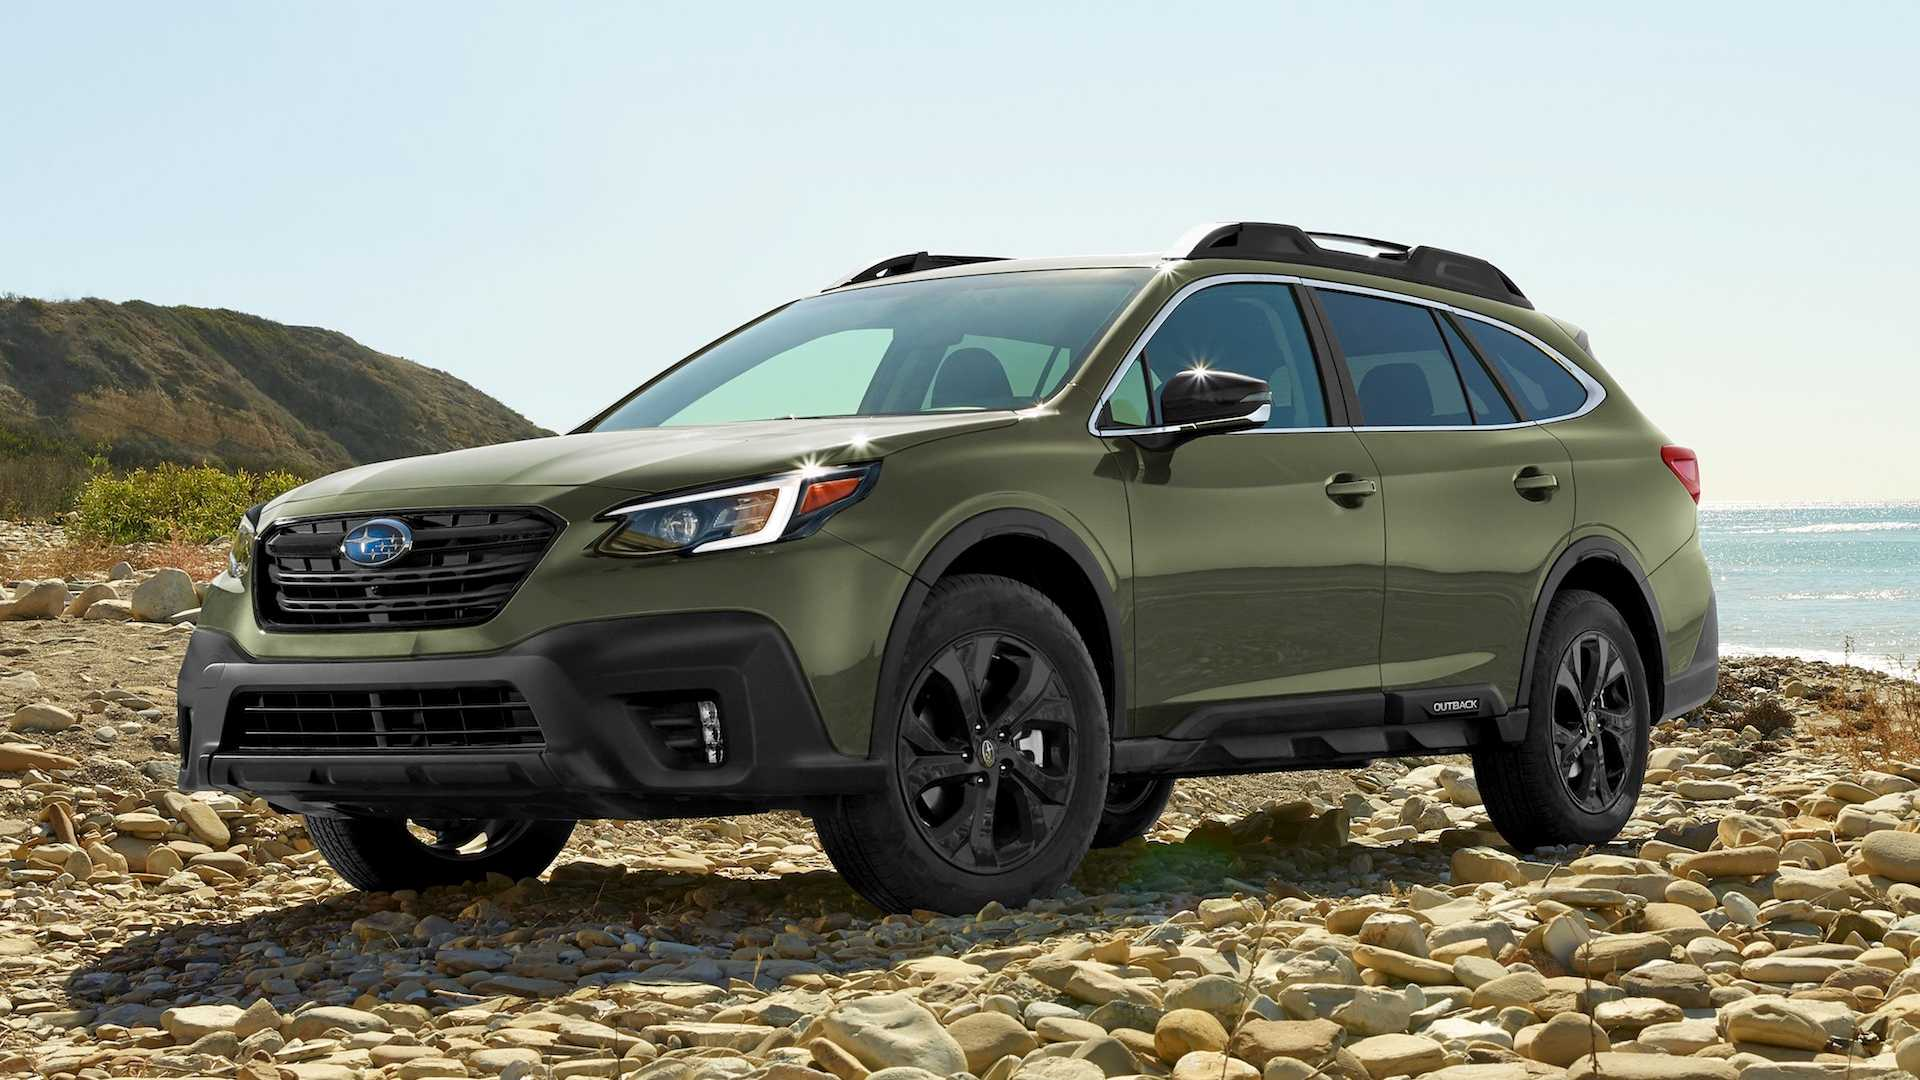 36 Concept of 2020 Subaru Outback Photos Prices with 2020 Subaru Outback Photos